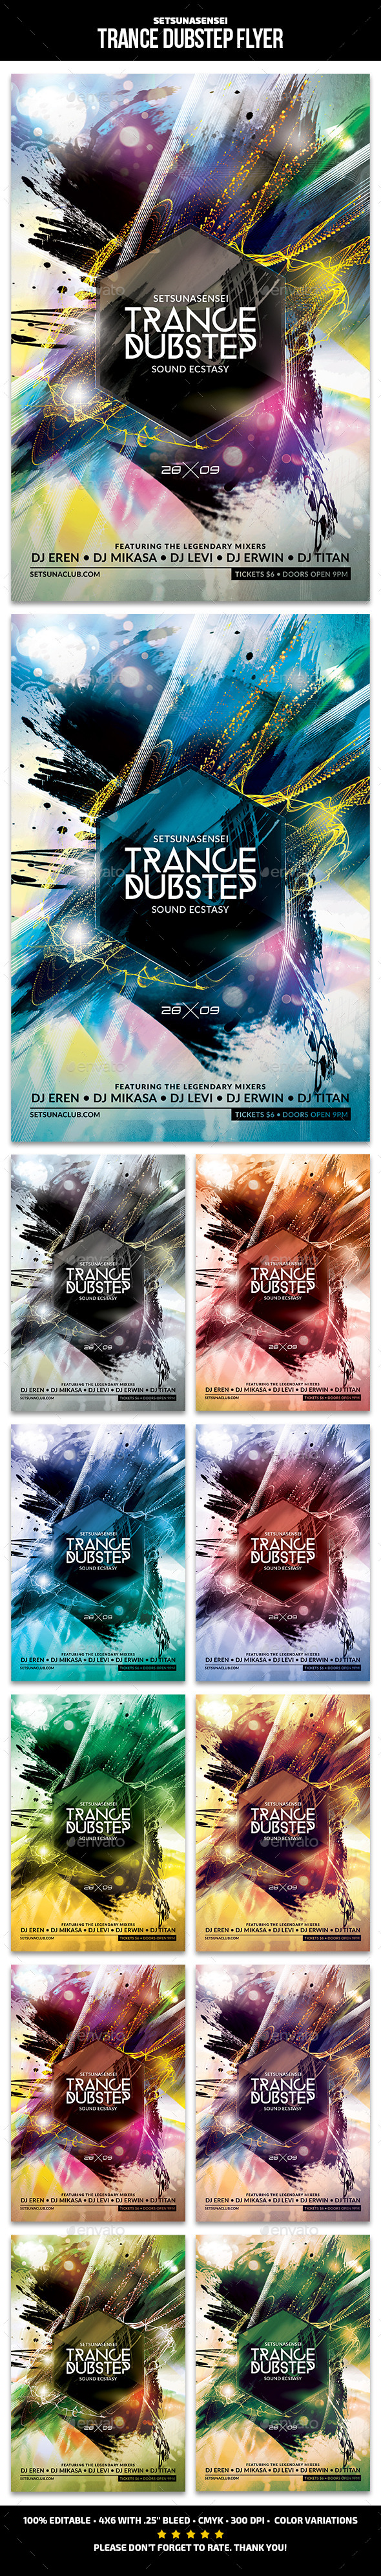 Trance Dubstep Flyer - Clubs & Parties Events